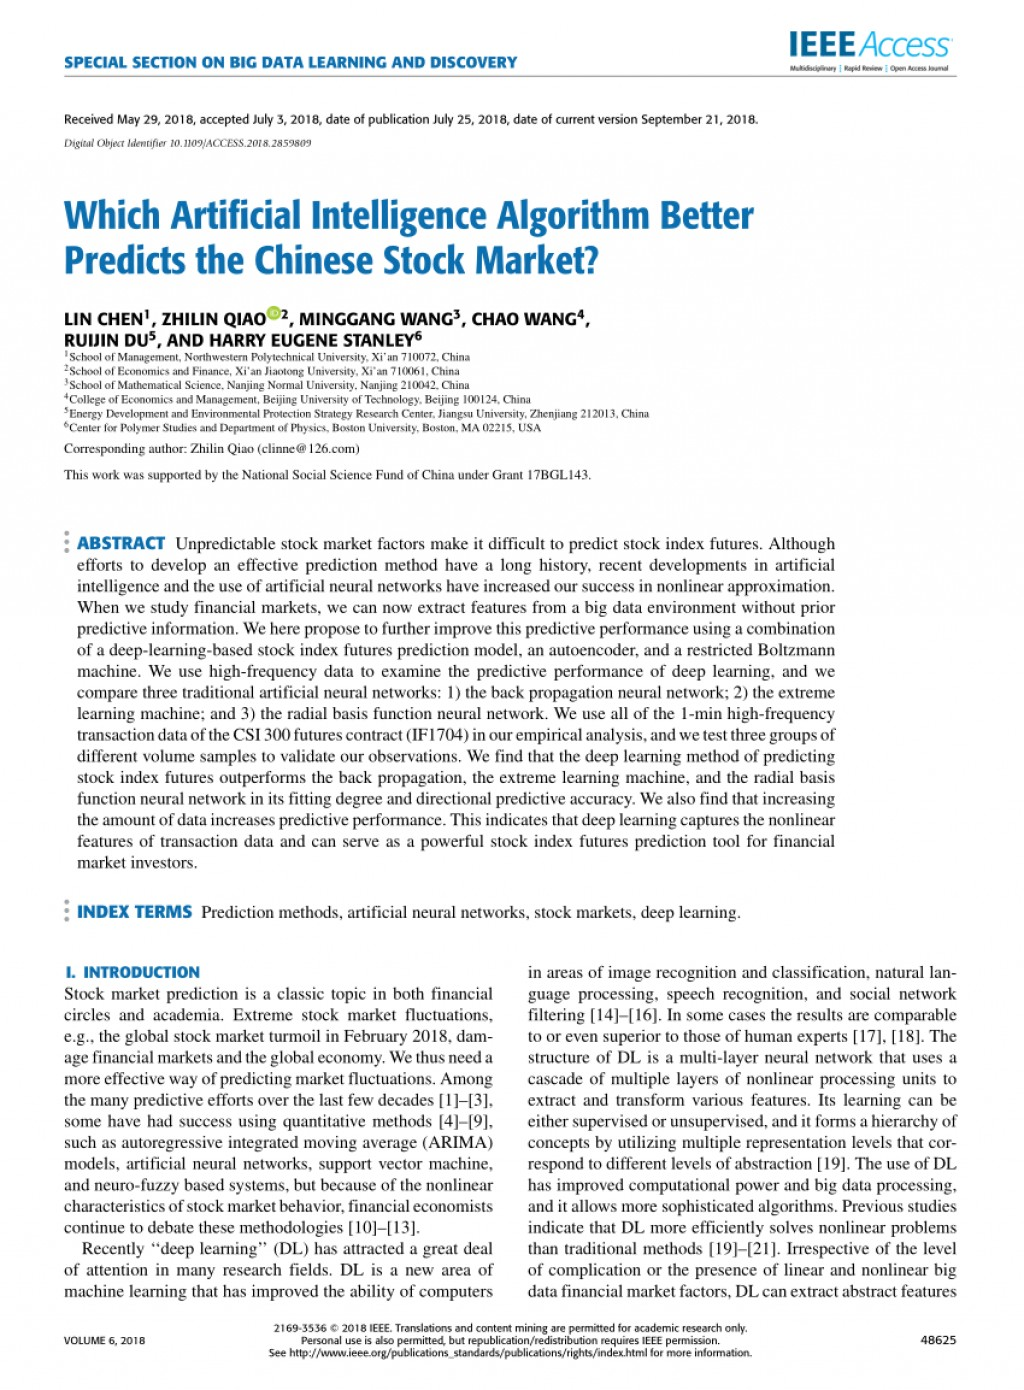 002 Research Paper Artificial Intelligence Ieee Impressive 2018 Large